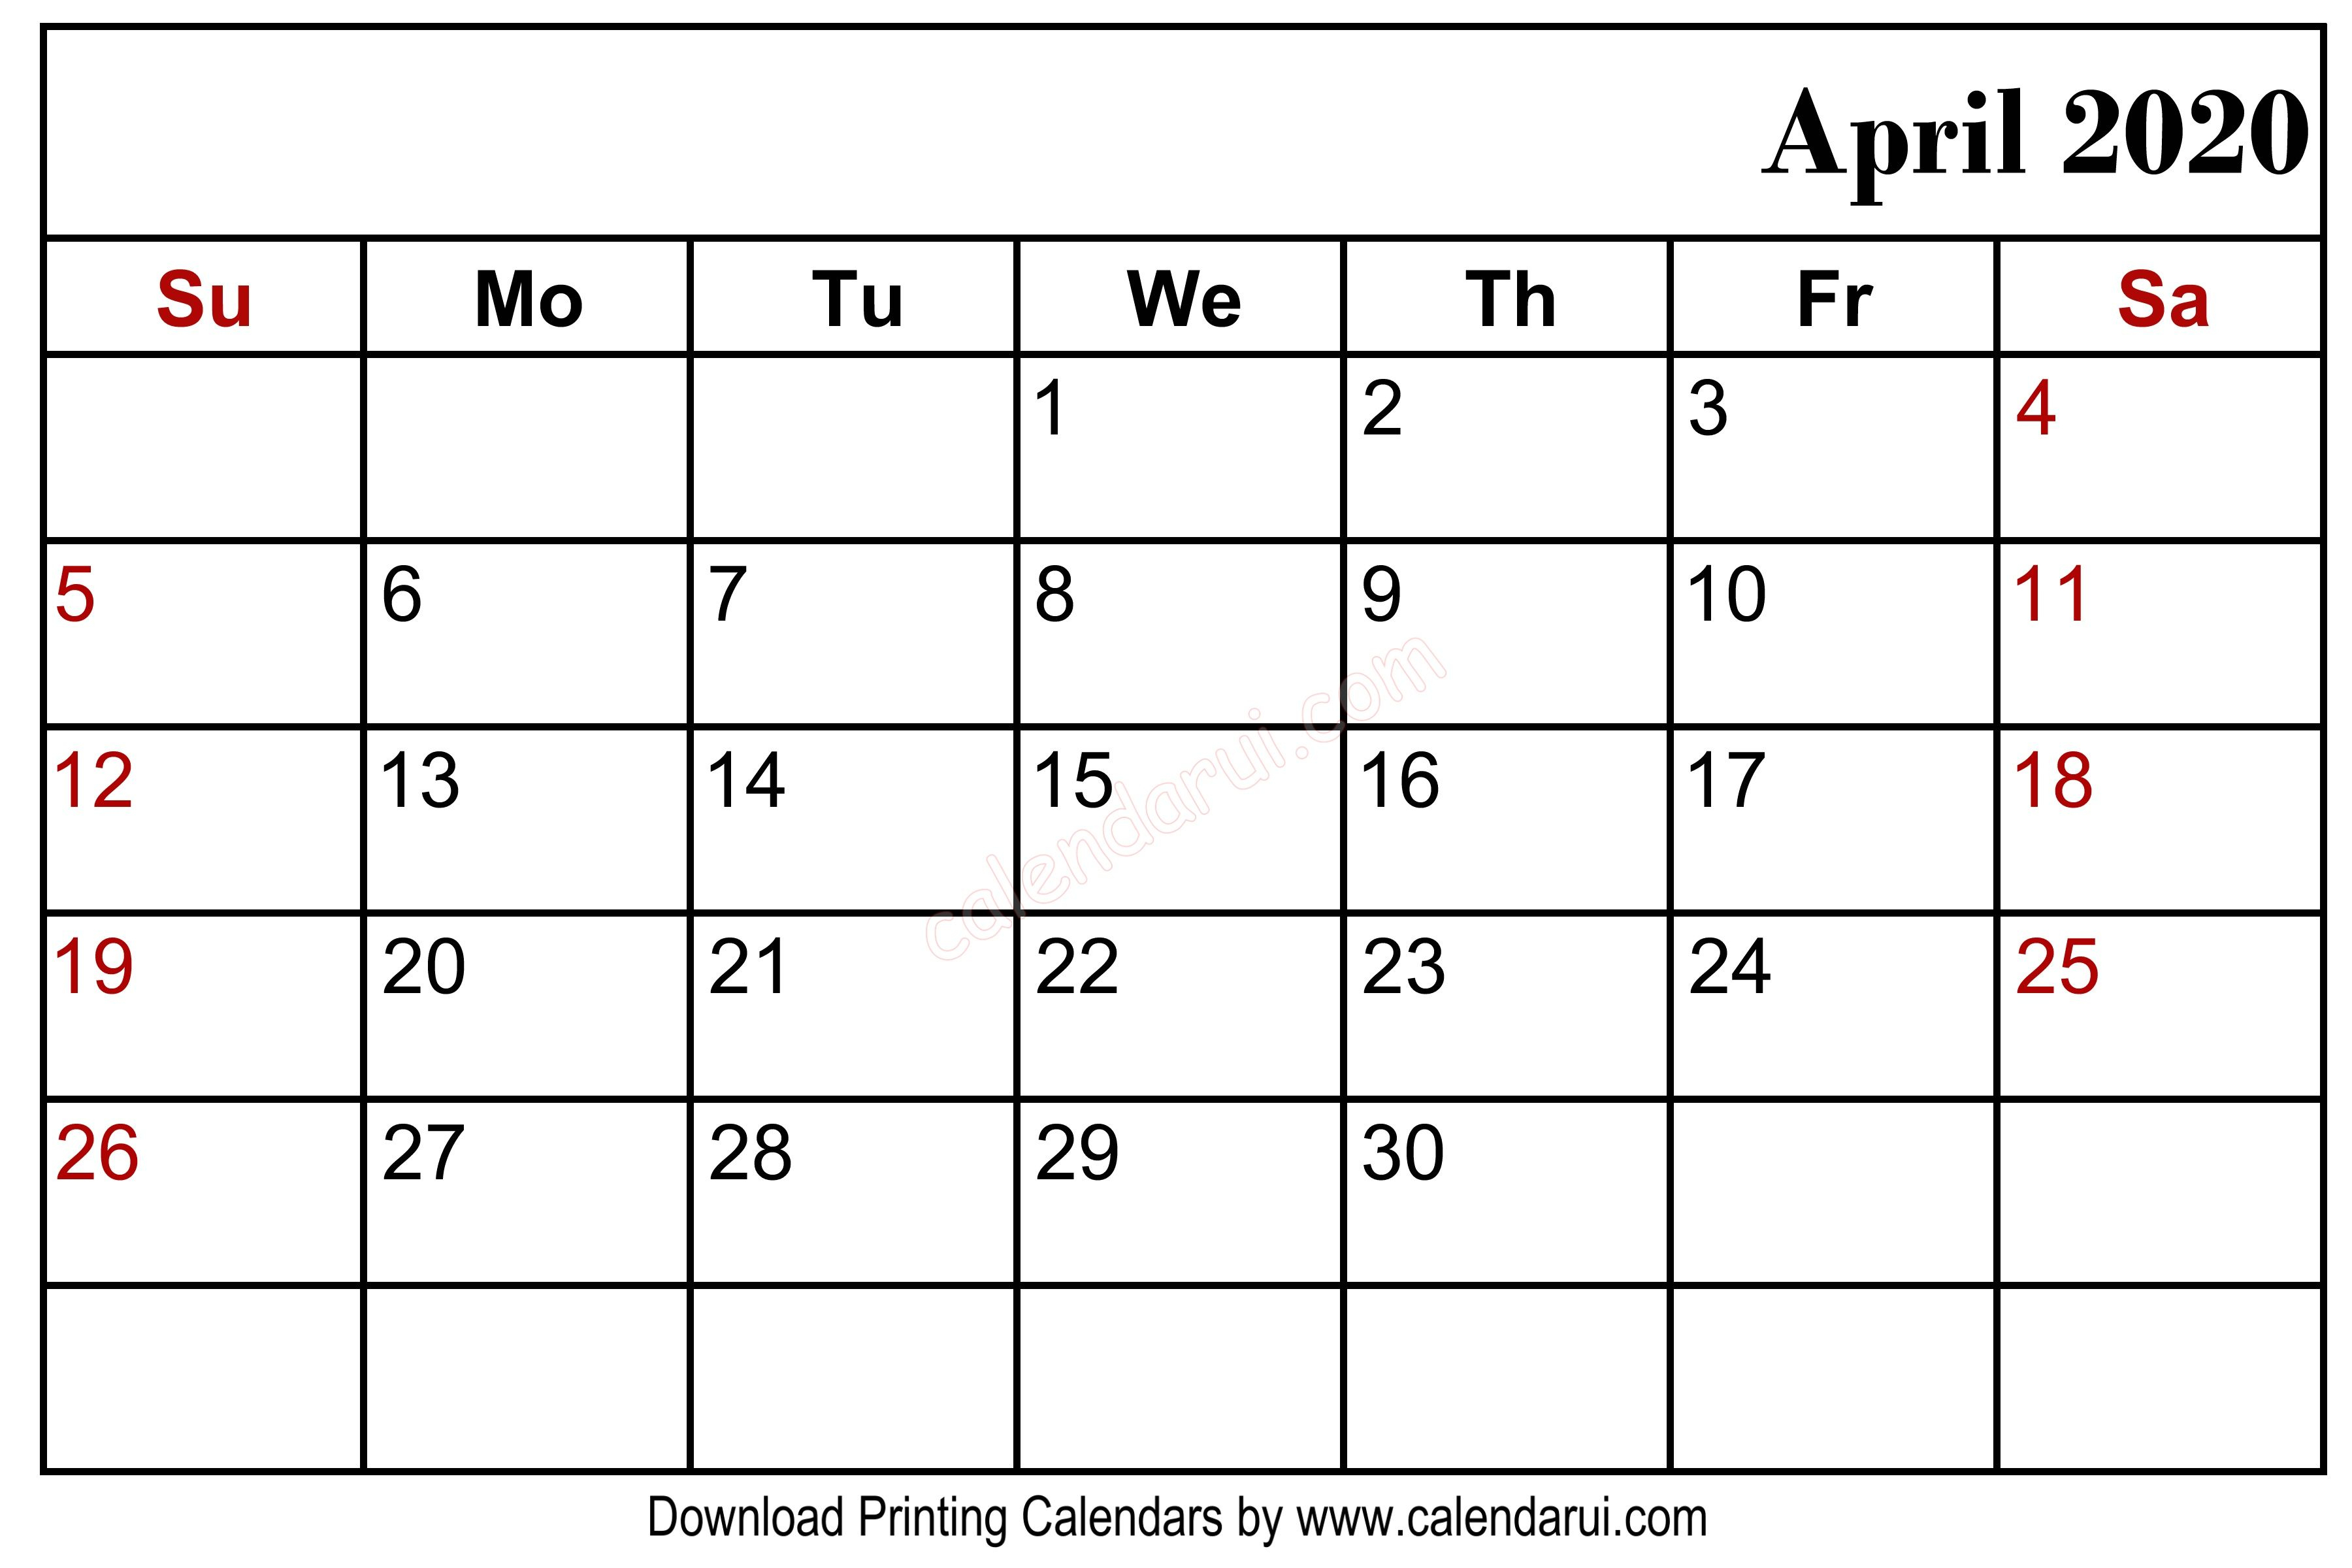 April 2020 Blank Calendar Printable Right Header | Monthly